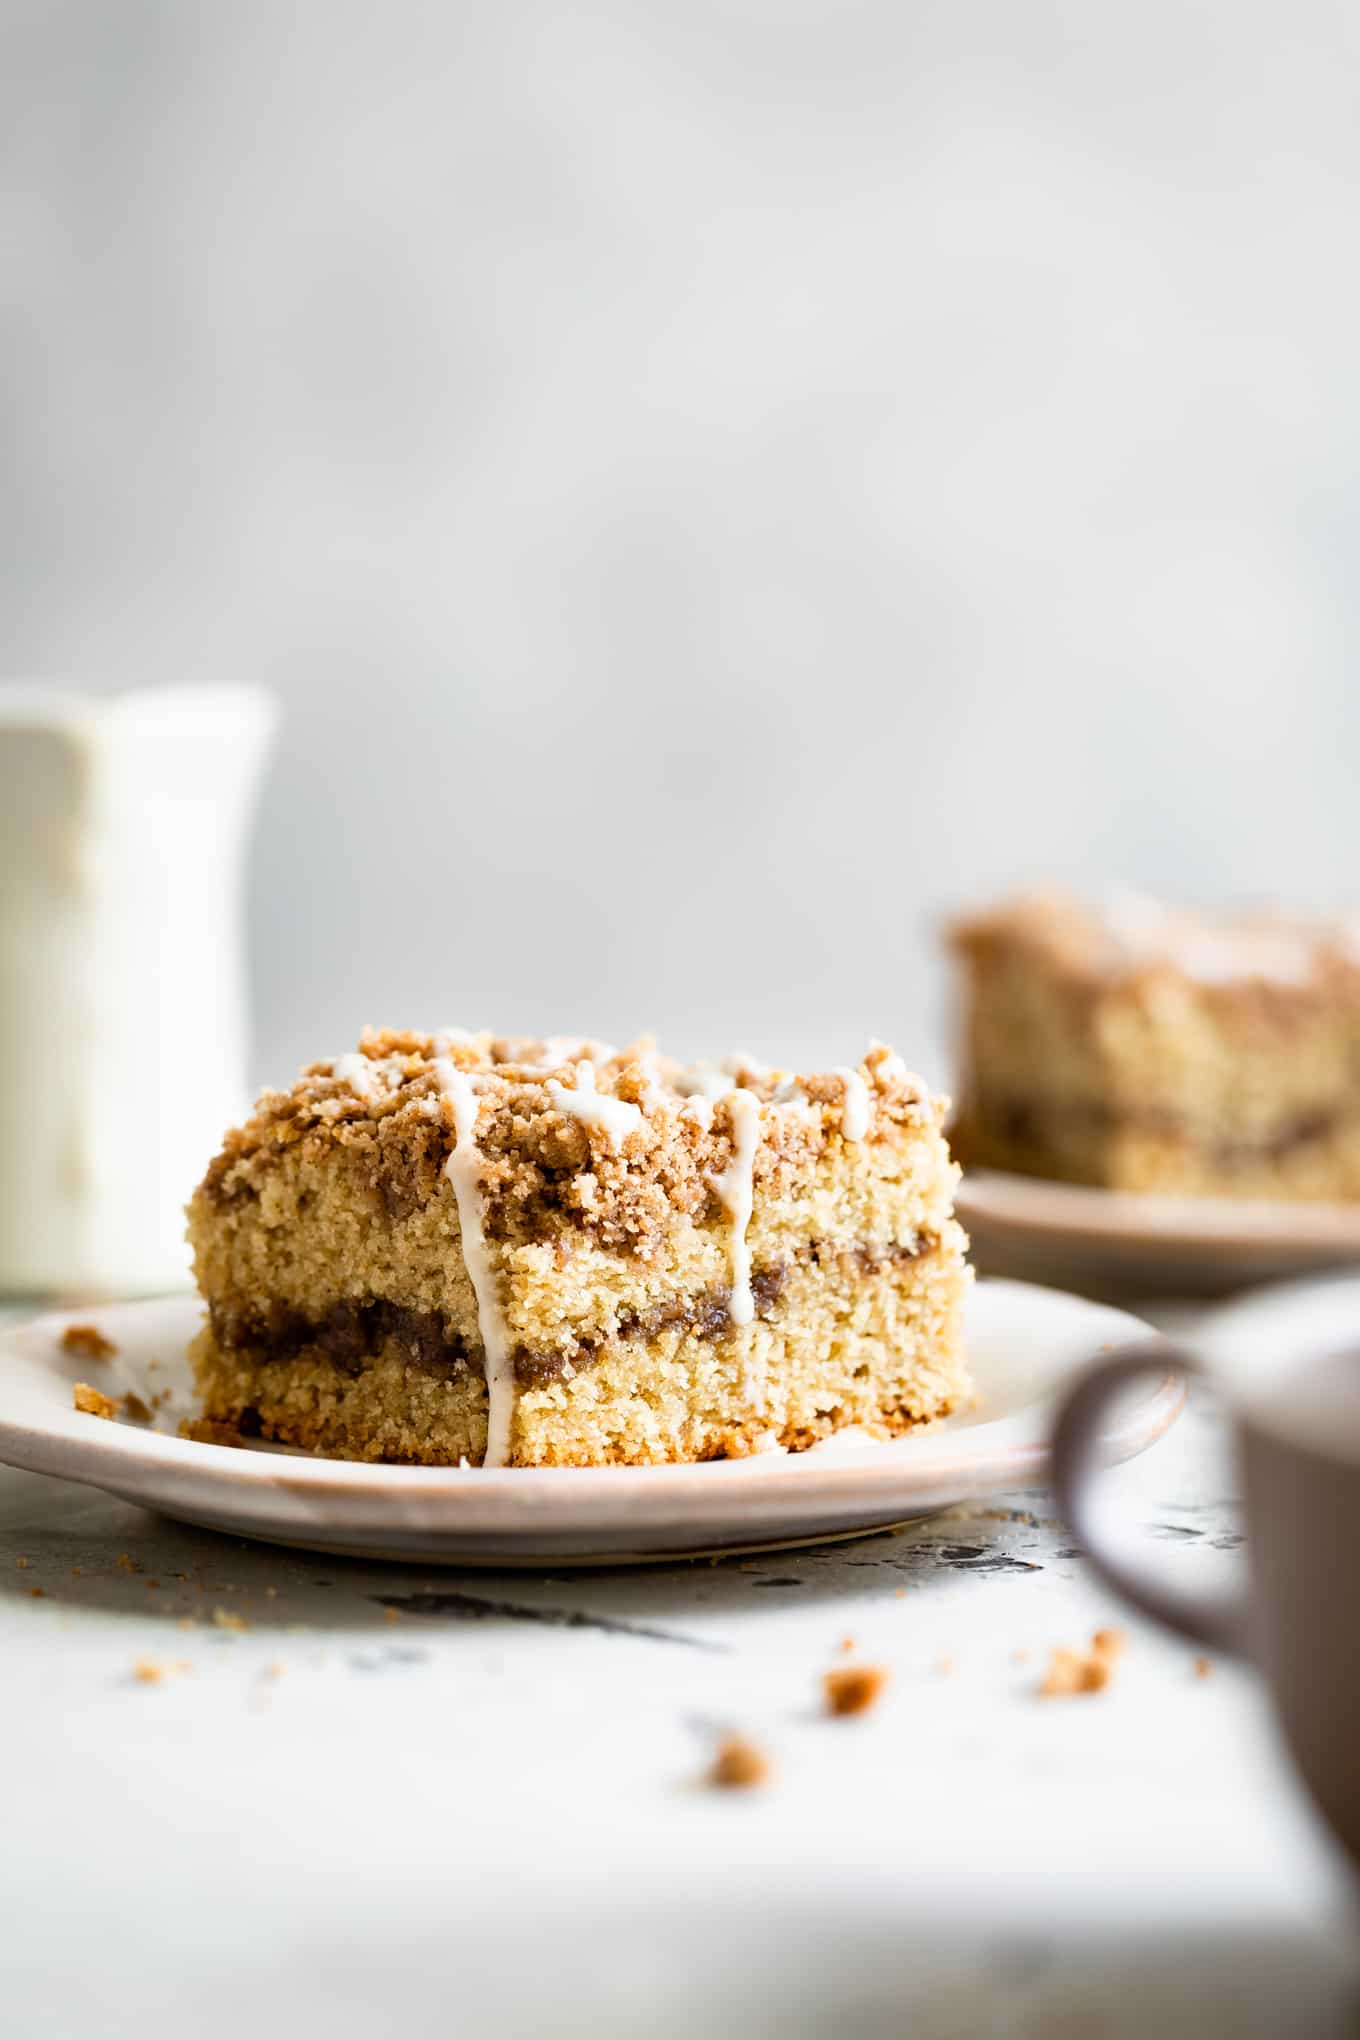 Best Gluten-free Coffee Cake Recipe